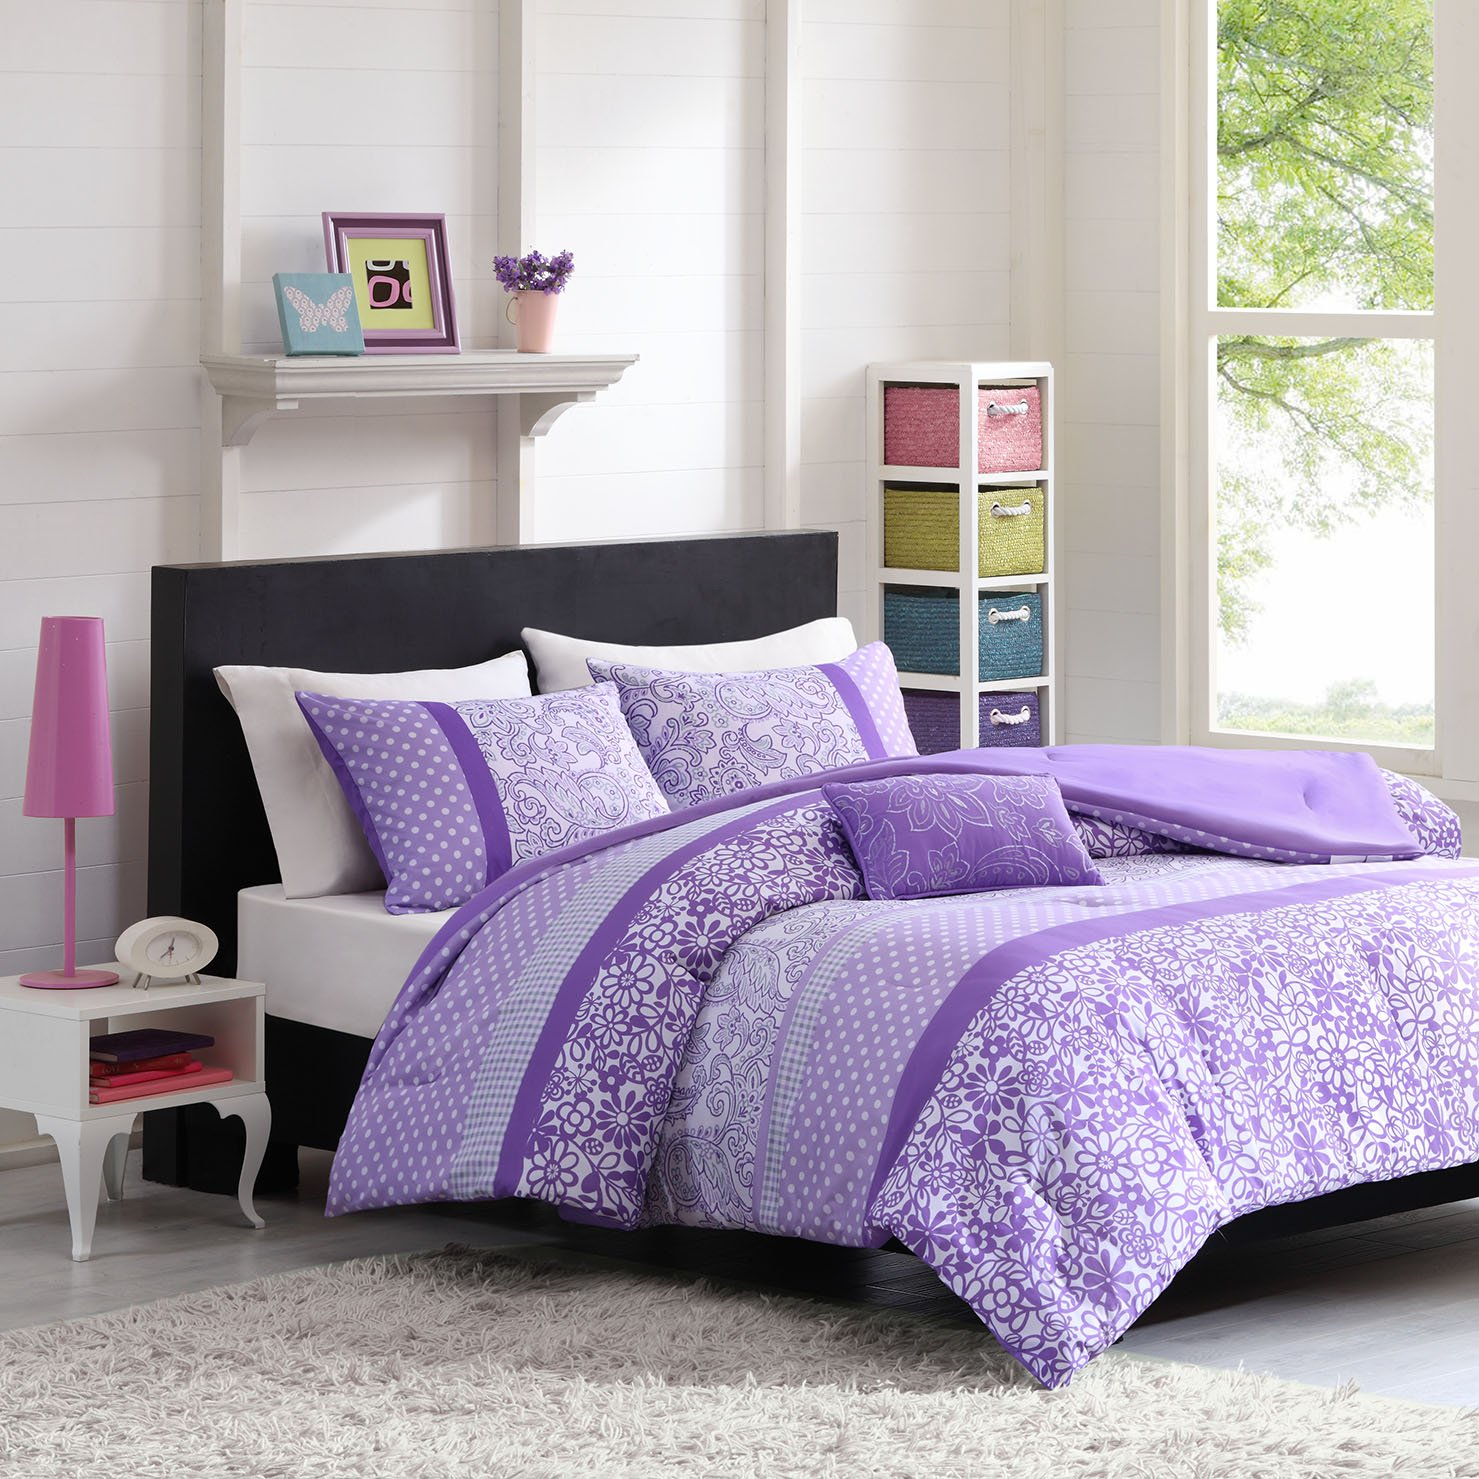 purple bedroom sets. Amazon com  Mizone Riley 4 Piece Comforter Set Full Queen Purple Home Kitchen